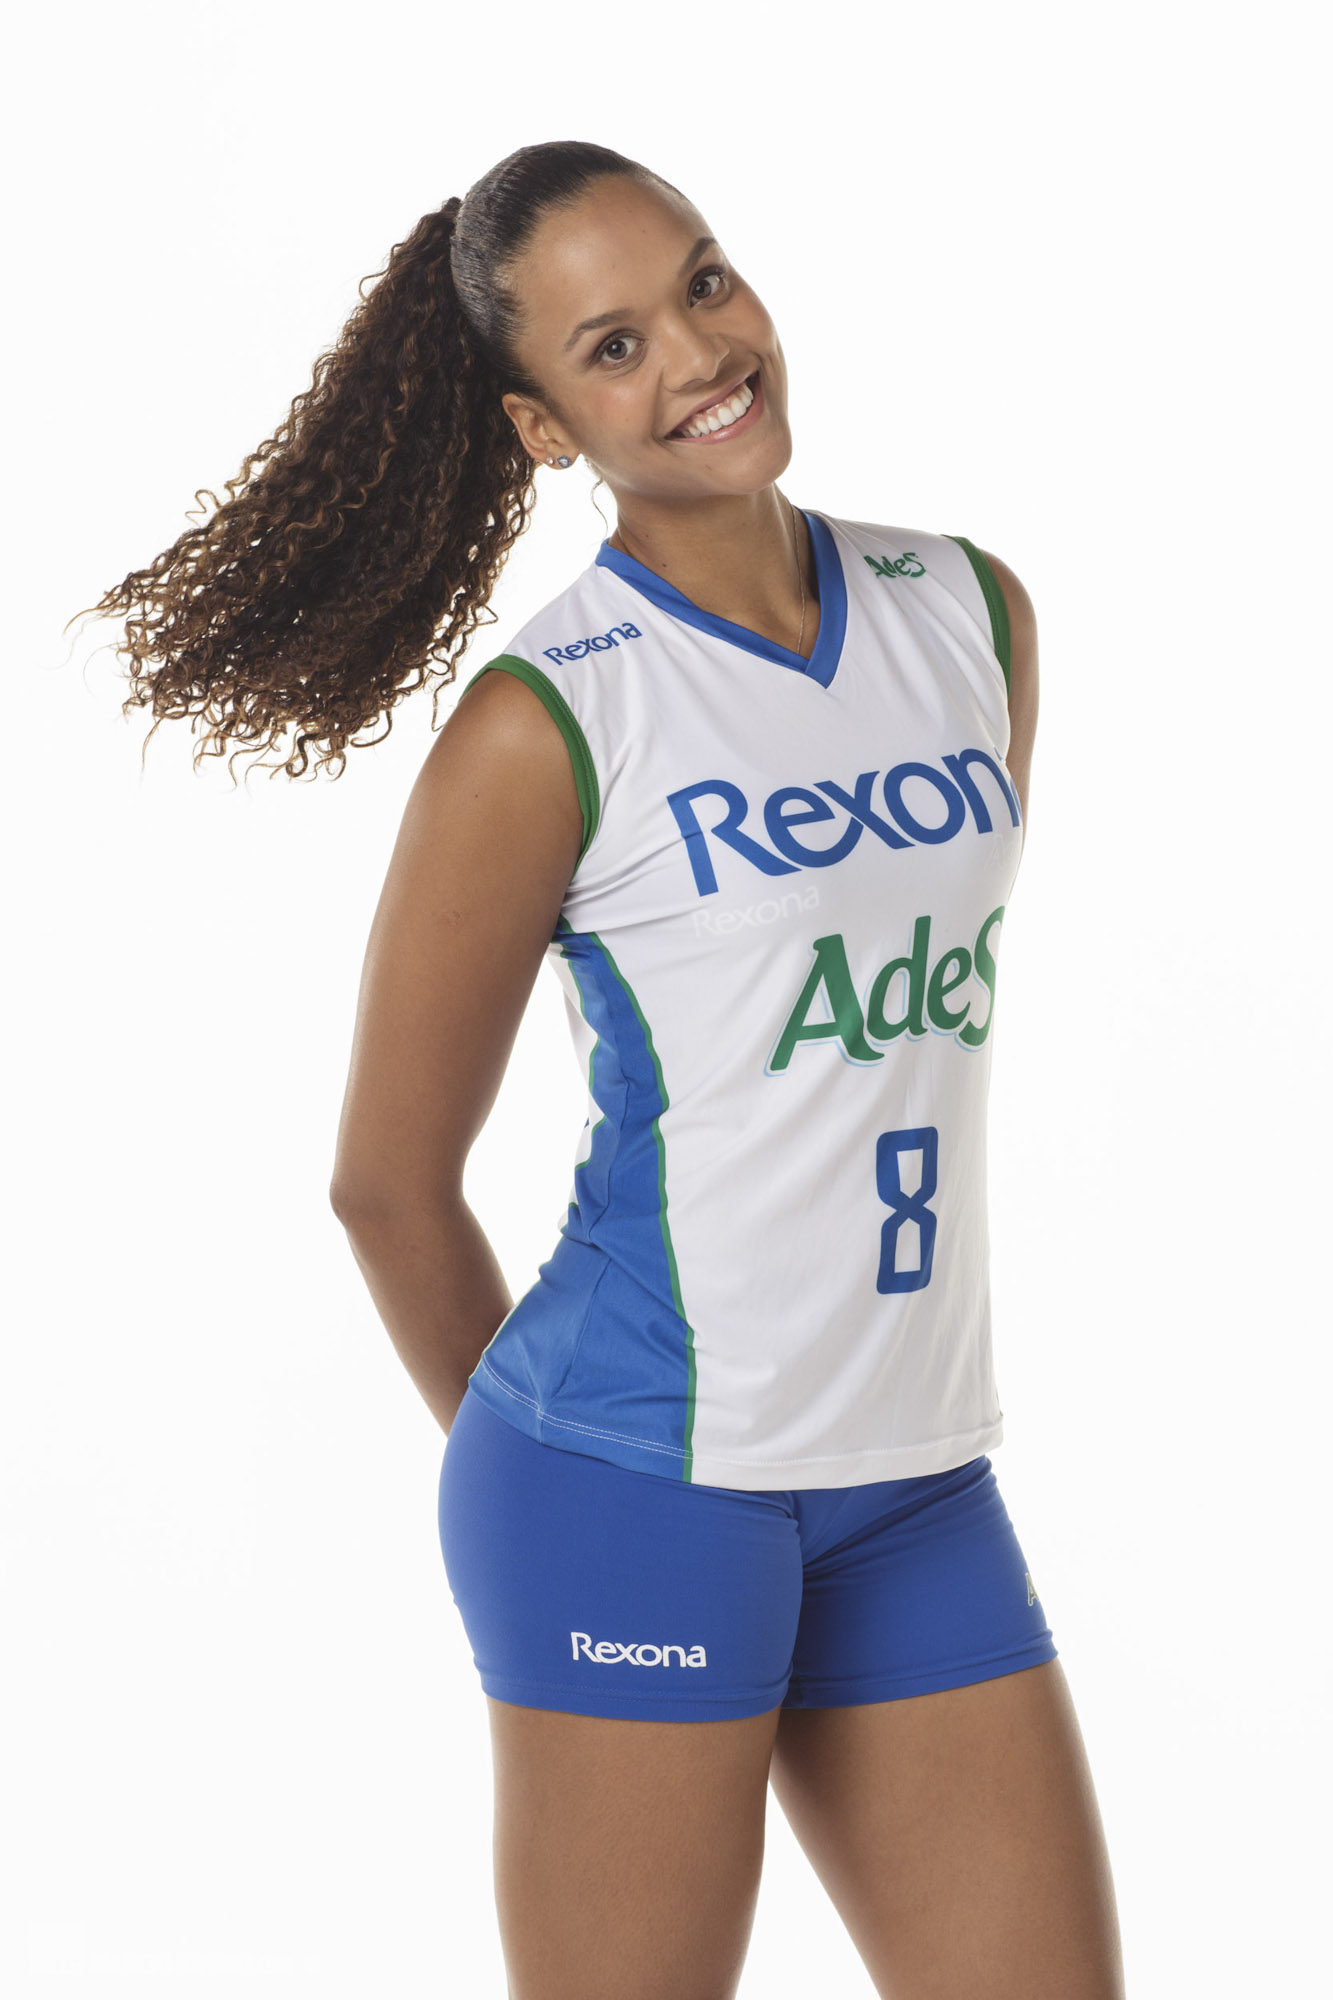 Rexona_Ades3330Low.jpg